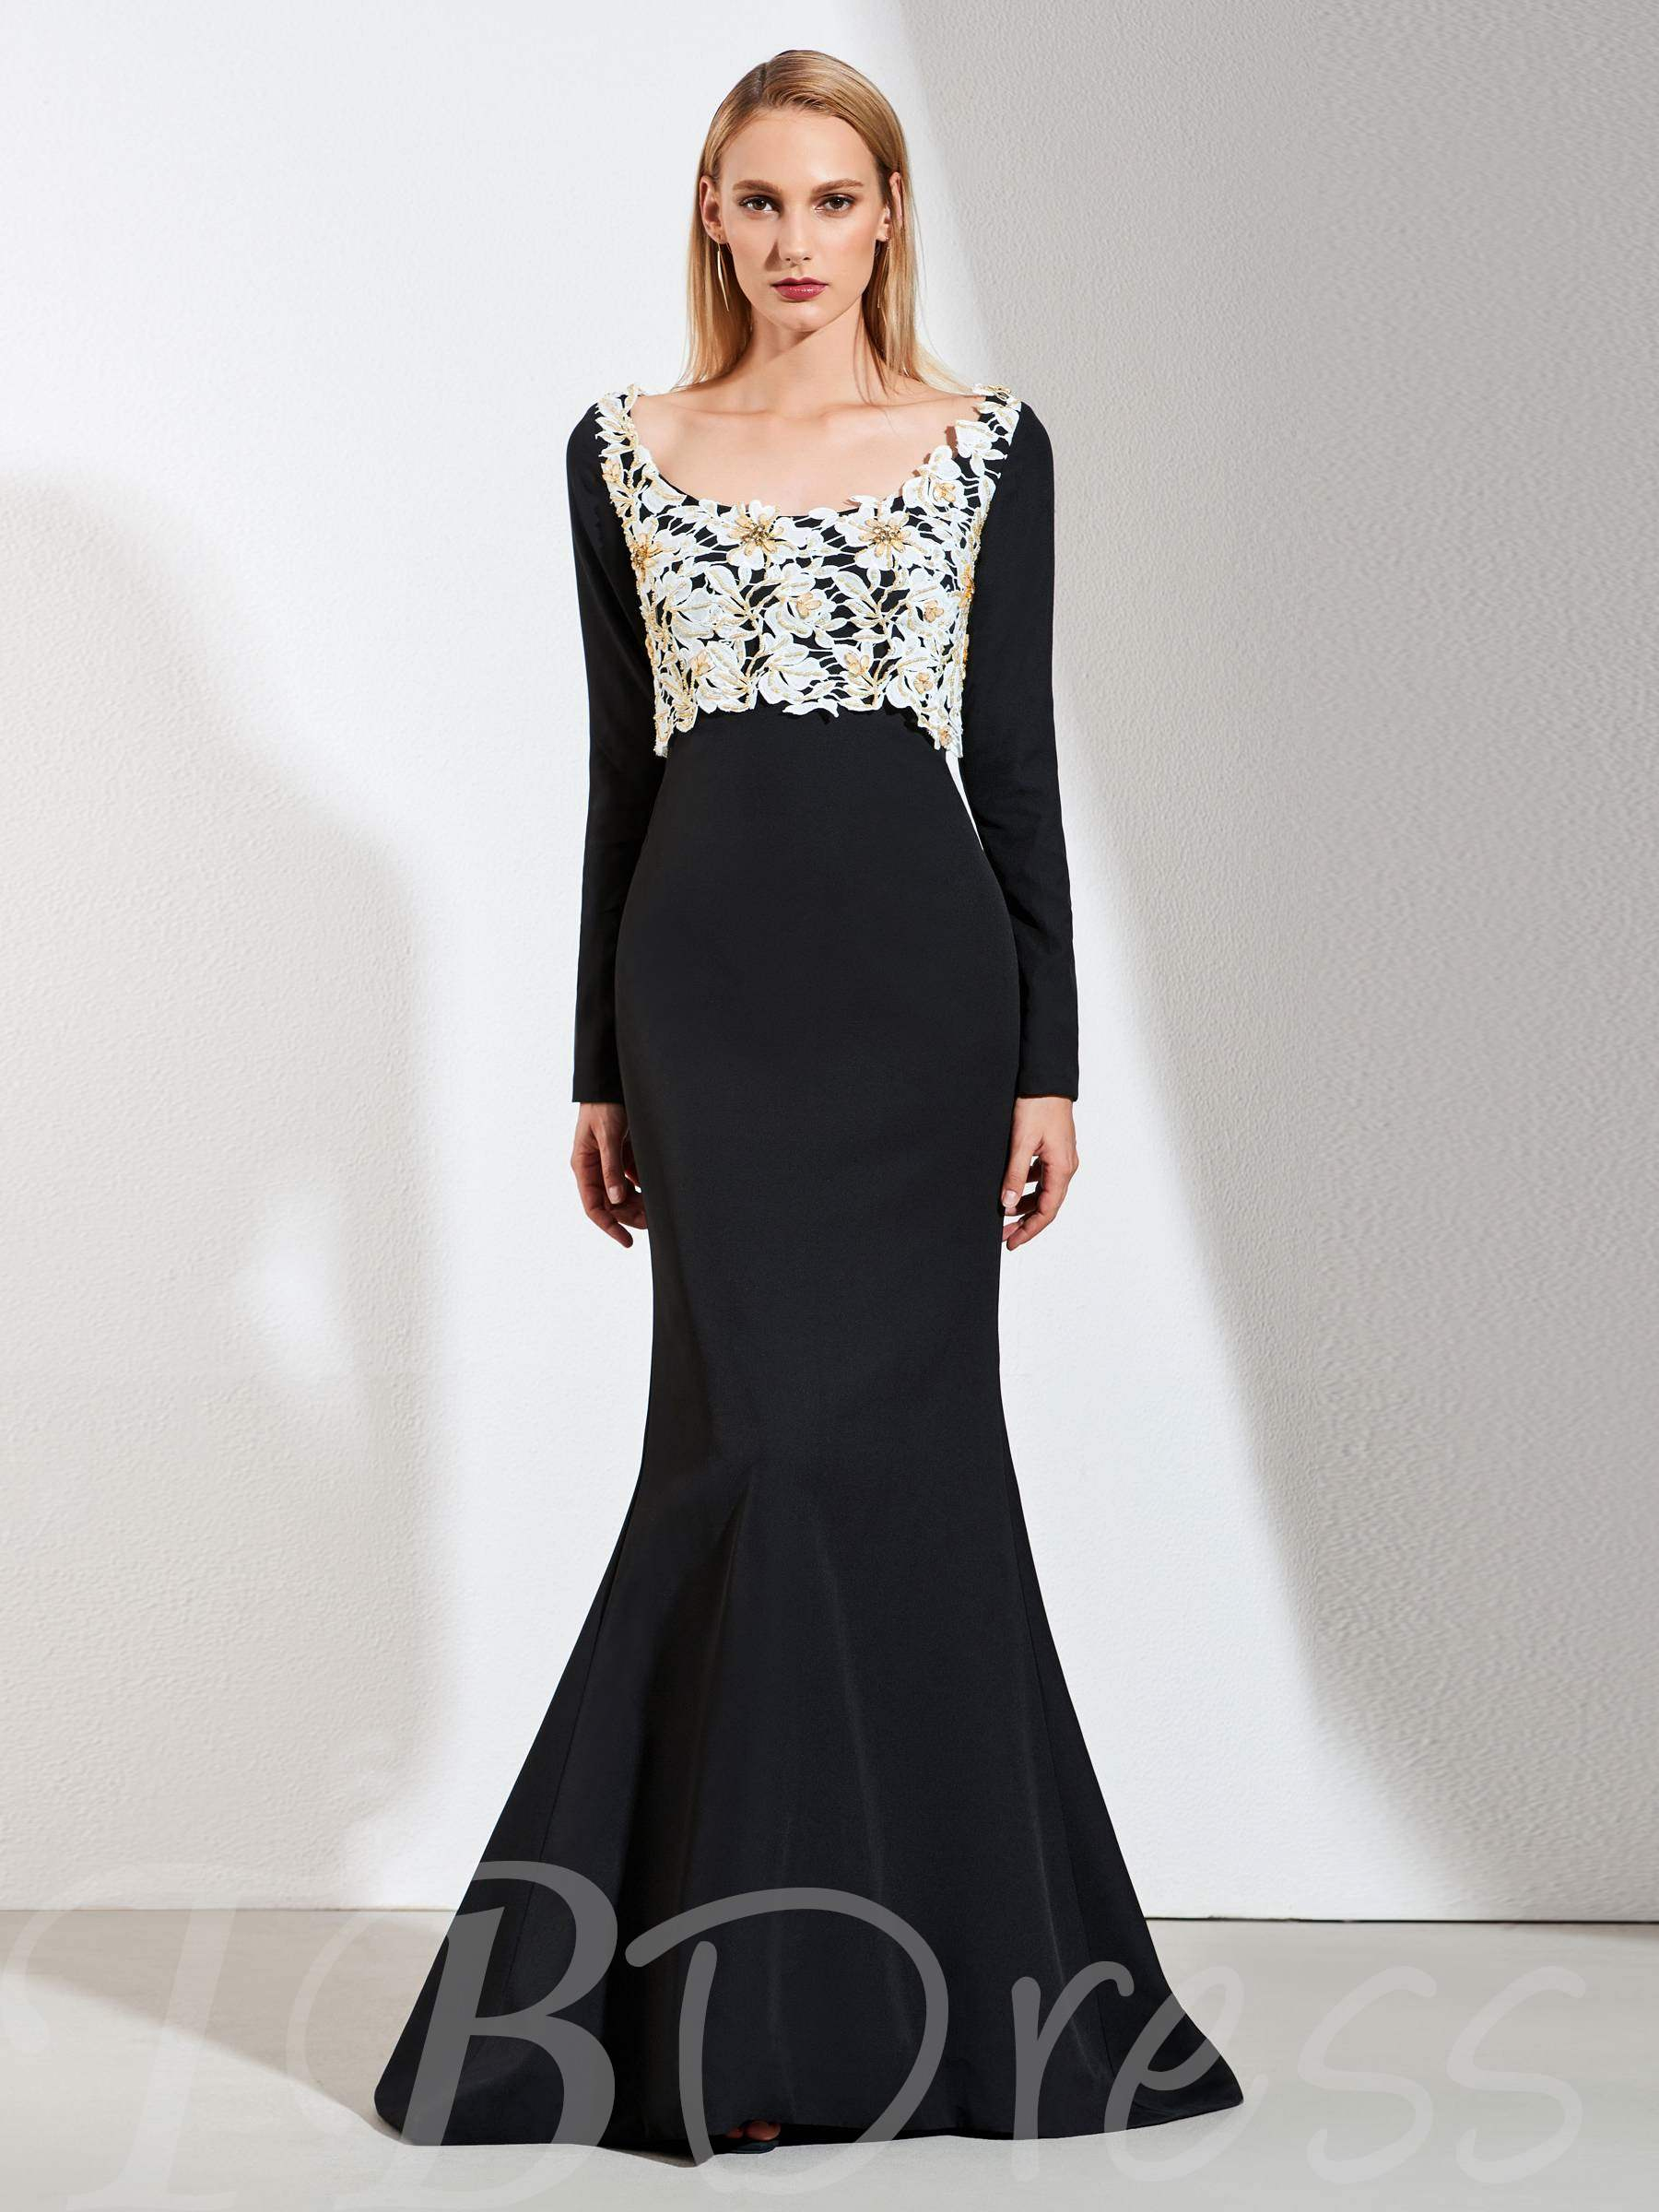 Mermaid Lace Square Beaded Evening Dress, Spring,Summer,Fall,Winter, 13389362